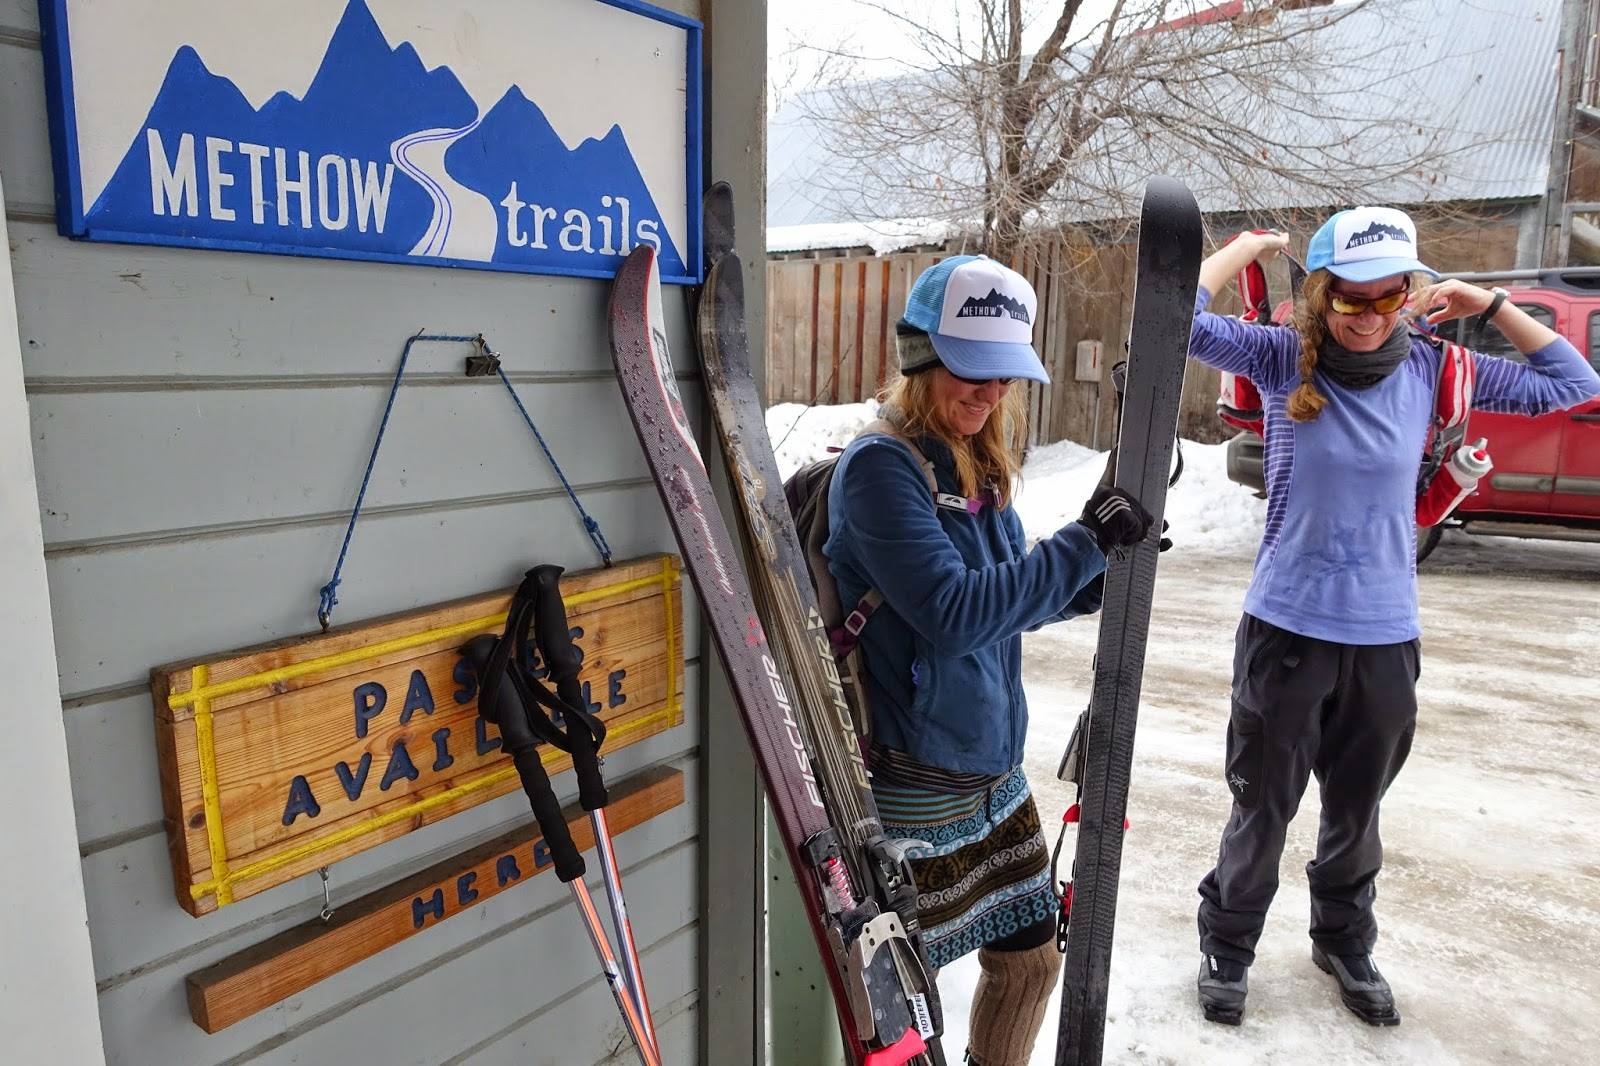 photo by Kristen Smith/MethowTrails.org